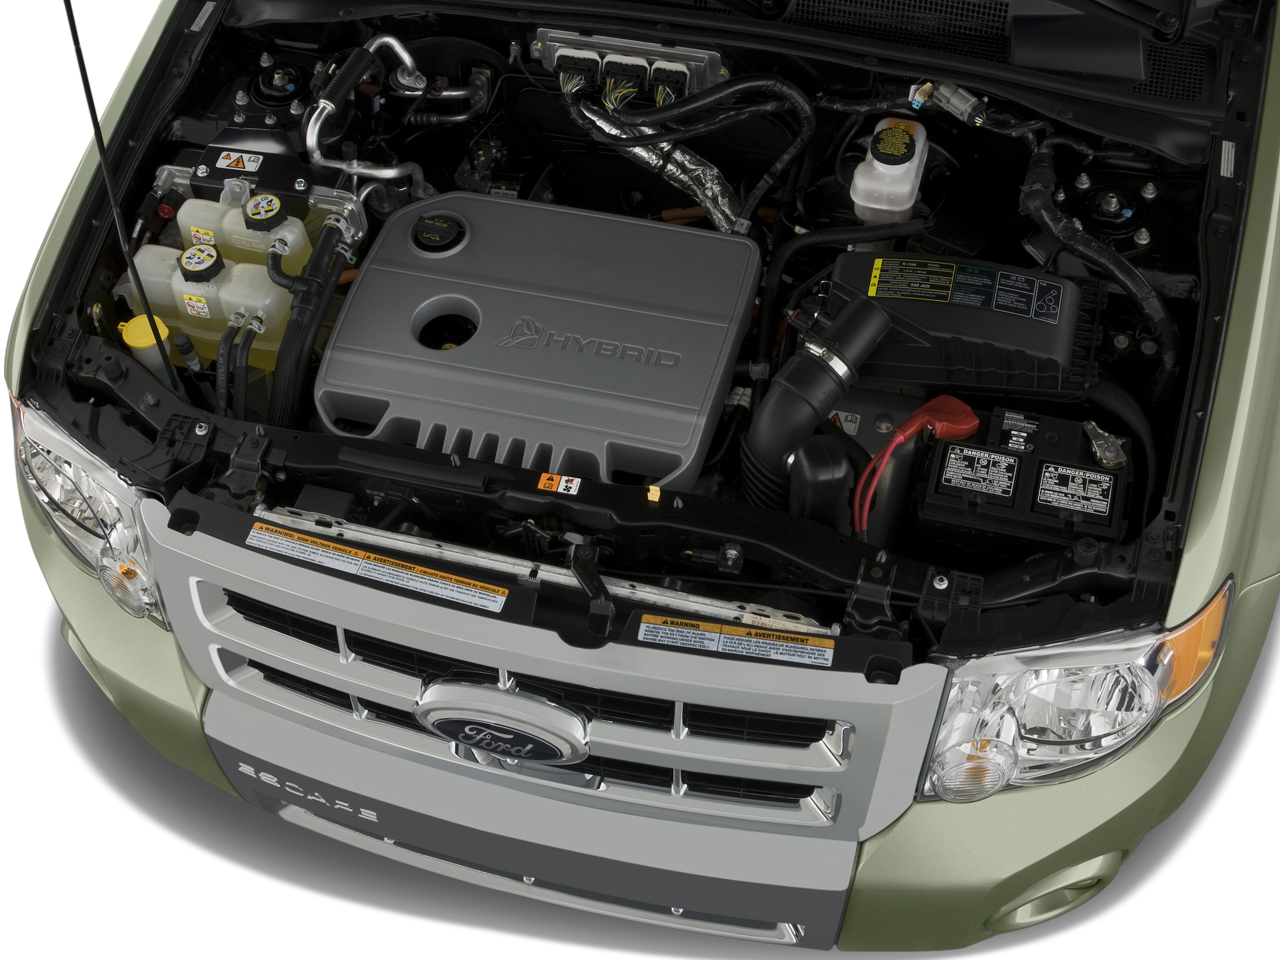 2008 ford escape road tests reviews and drivens for Motor ford escape 2005